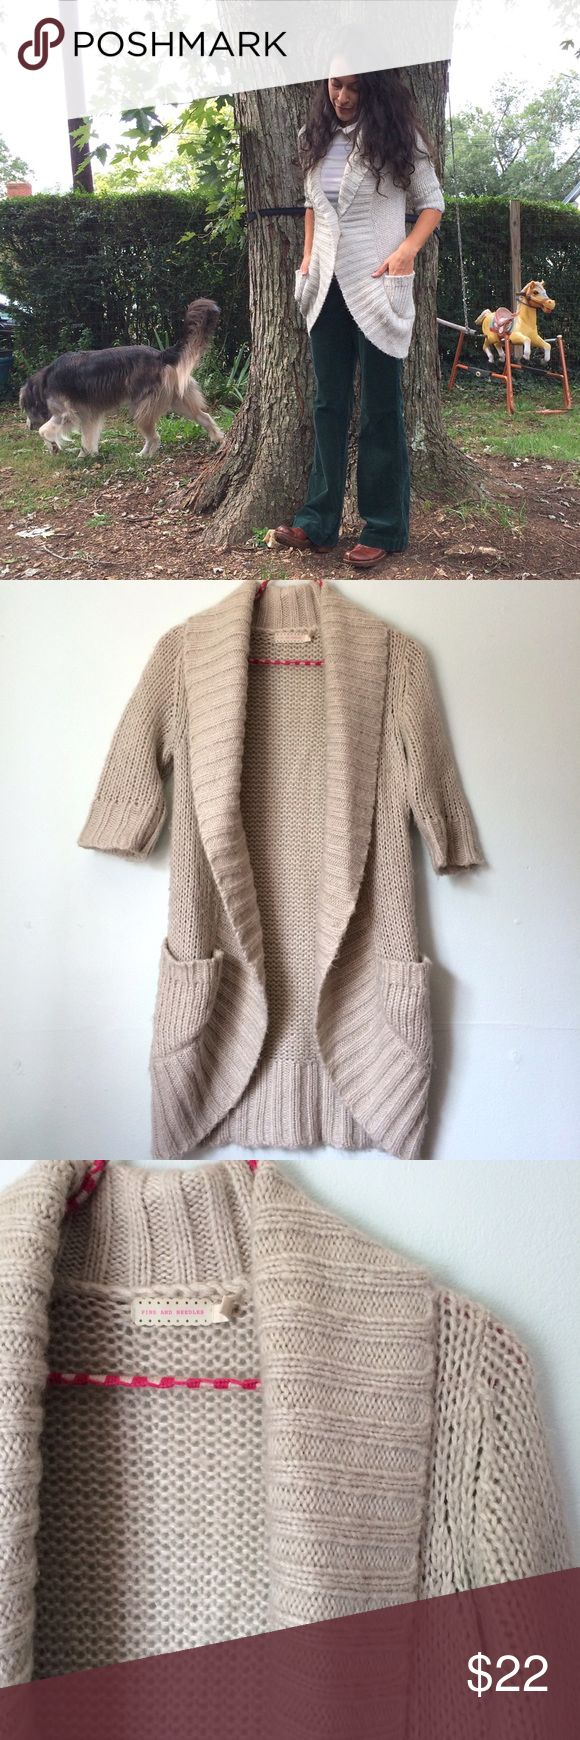 """Urban Outfitters Sweater 3/4 length sleeves and pockets make this a highly functional sweater coat, lightweight and warm. 75% Acrylic, 15% wool, 10% Mohair. Lovely light grey. It's modeled with a large safety pin holding it closed but otherwise has no button or hook closure. 9"""" sleeve, approximately 19"""" armpit to armpit & 32"""" long. By: Pins and needles. Could fit a medium as well due to generous sizing. Would be awesome as a maternity & nursing sweater. Urban Outfitters Sweaters"""